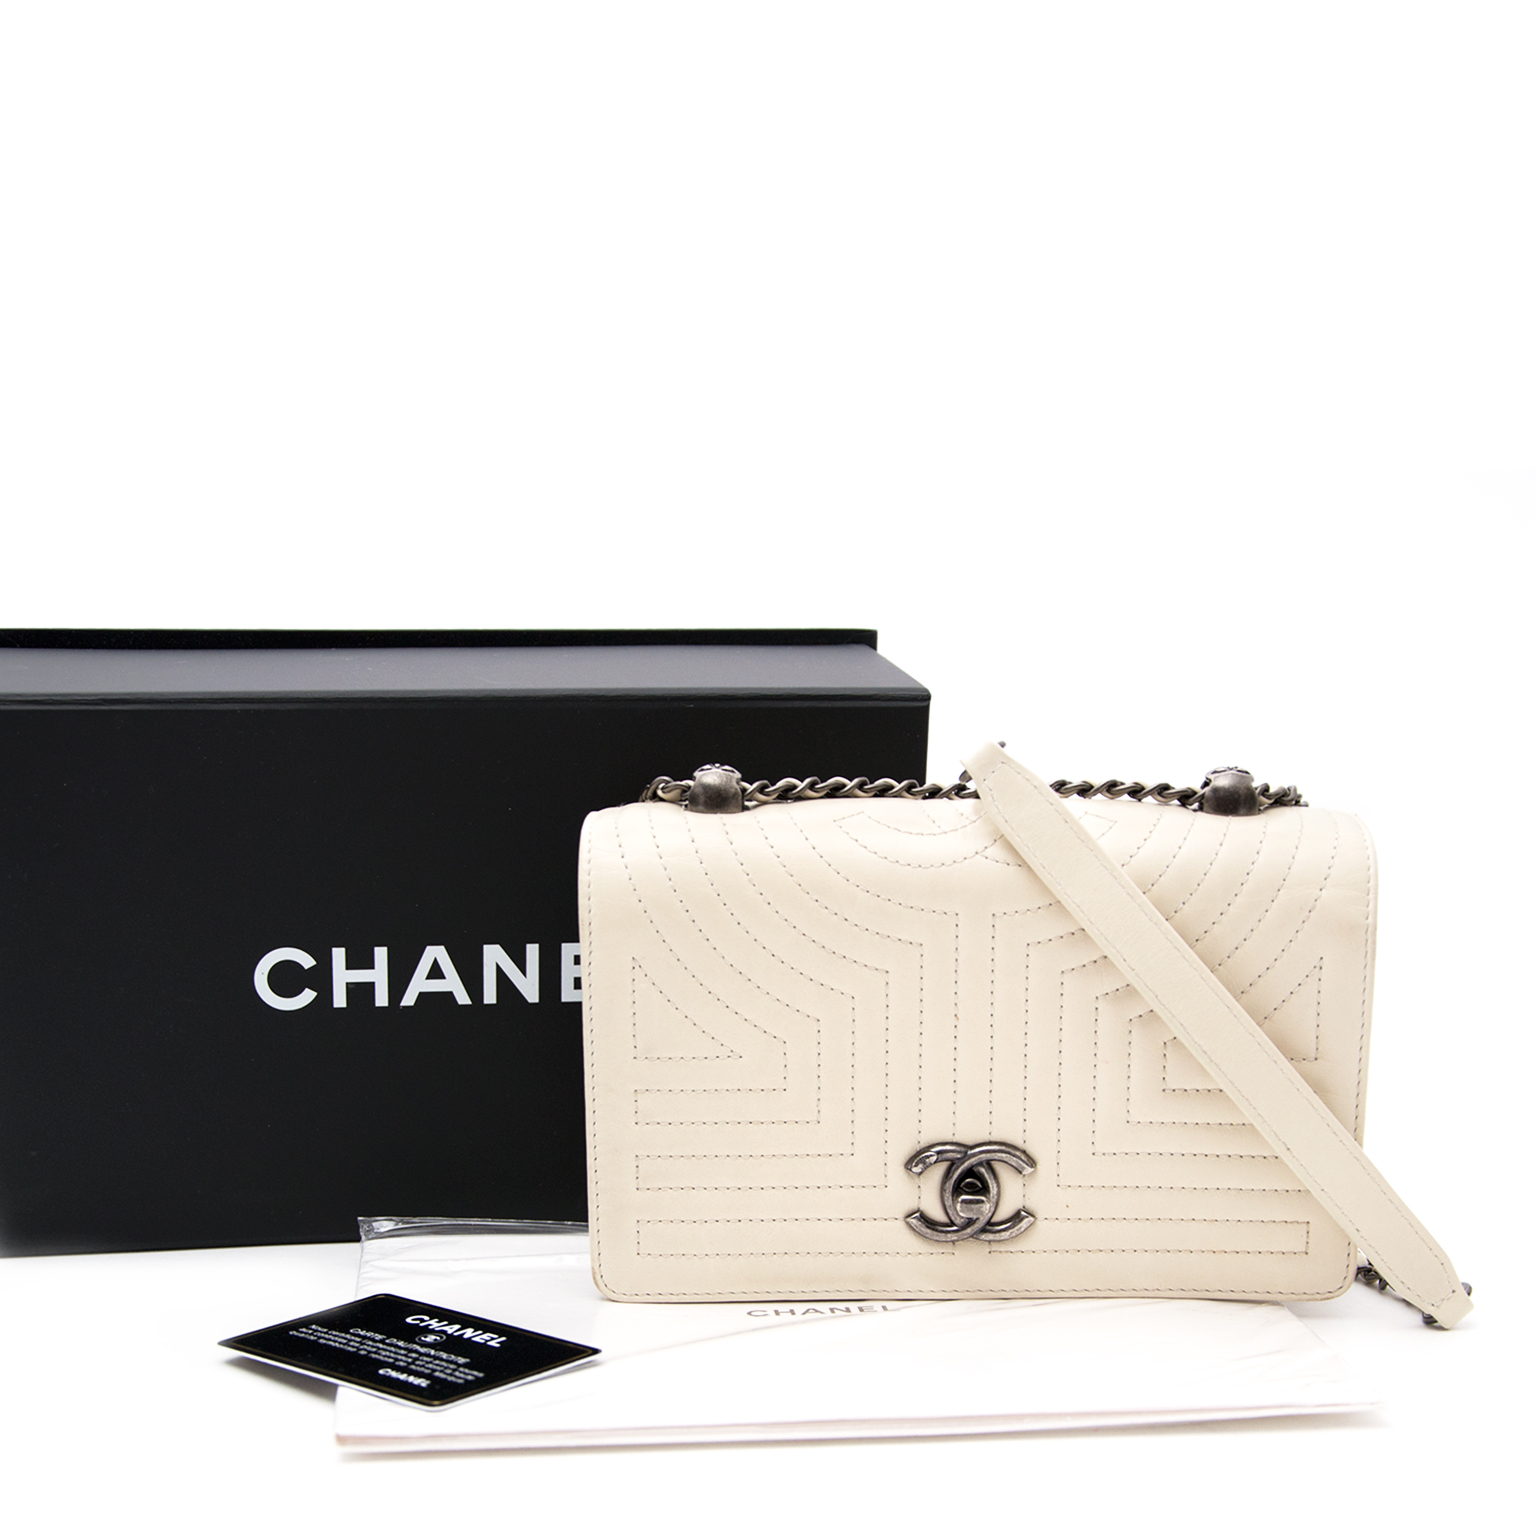 Chanel White Flap Bag safe and secure online shopping